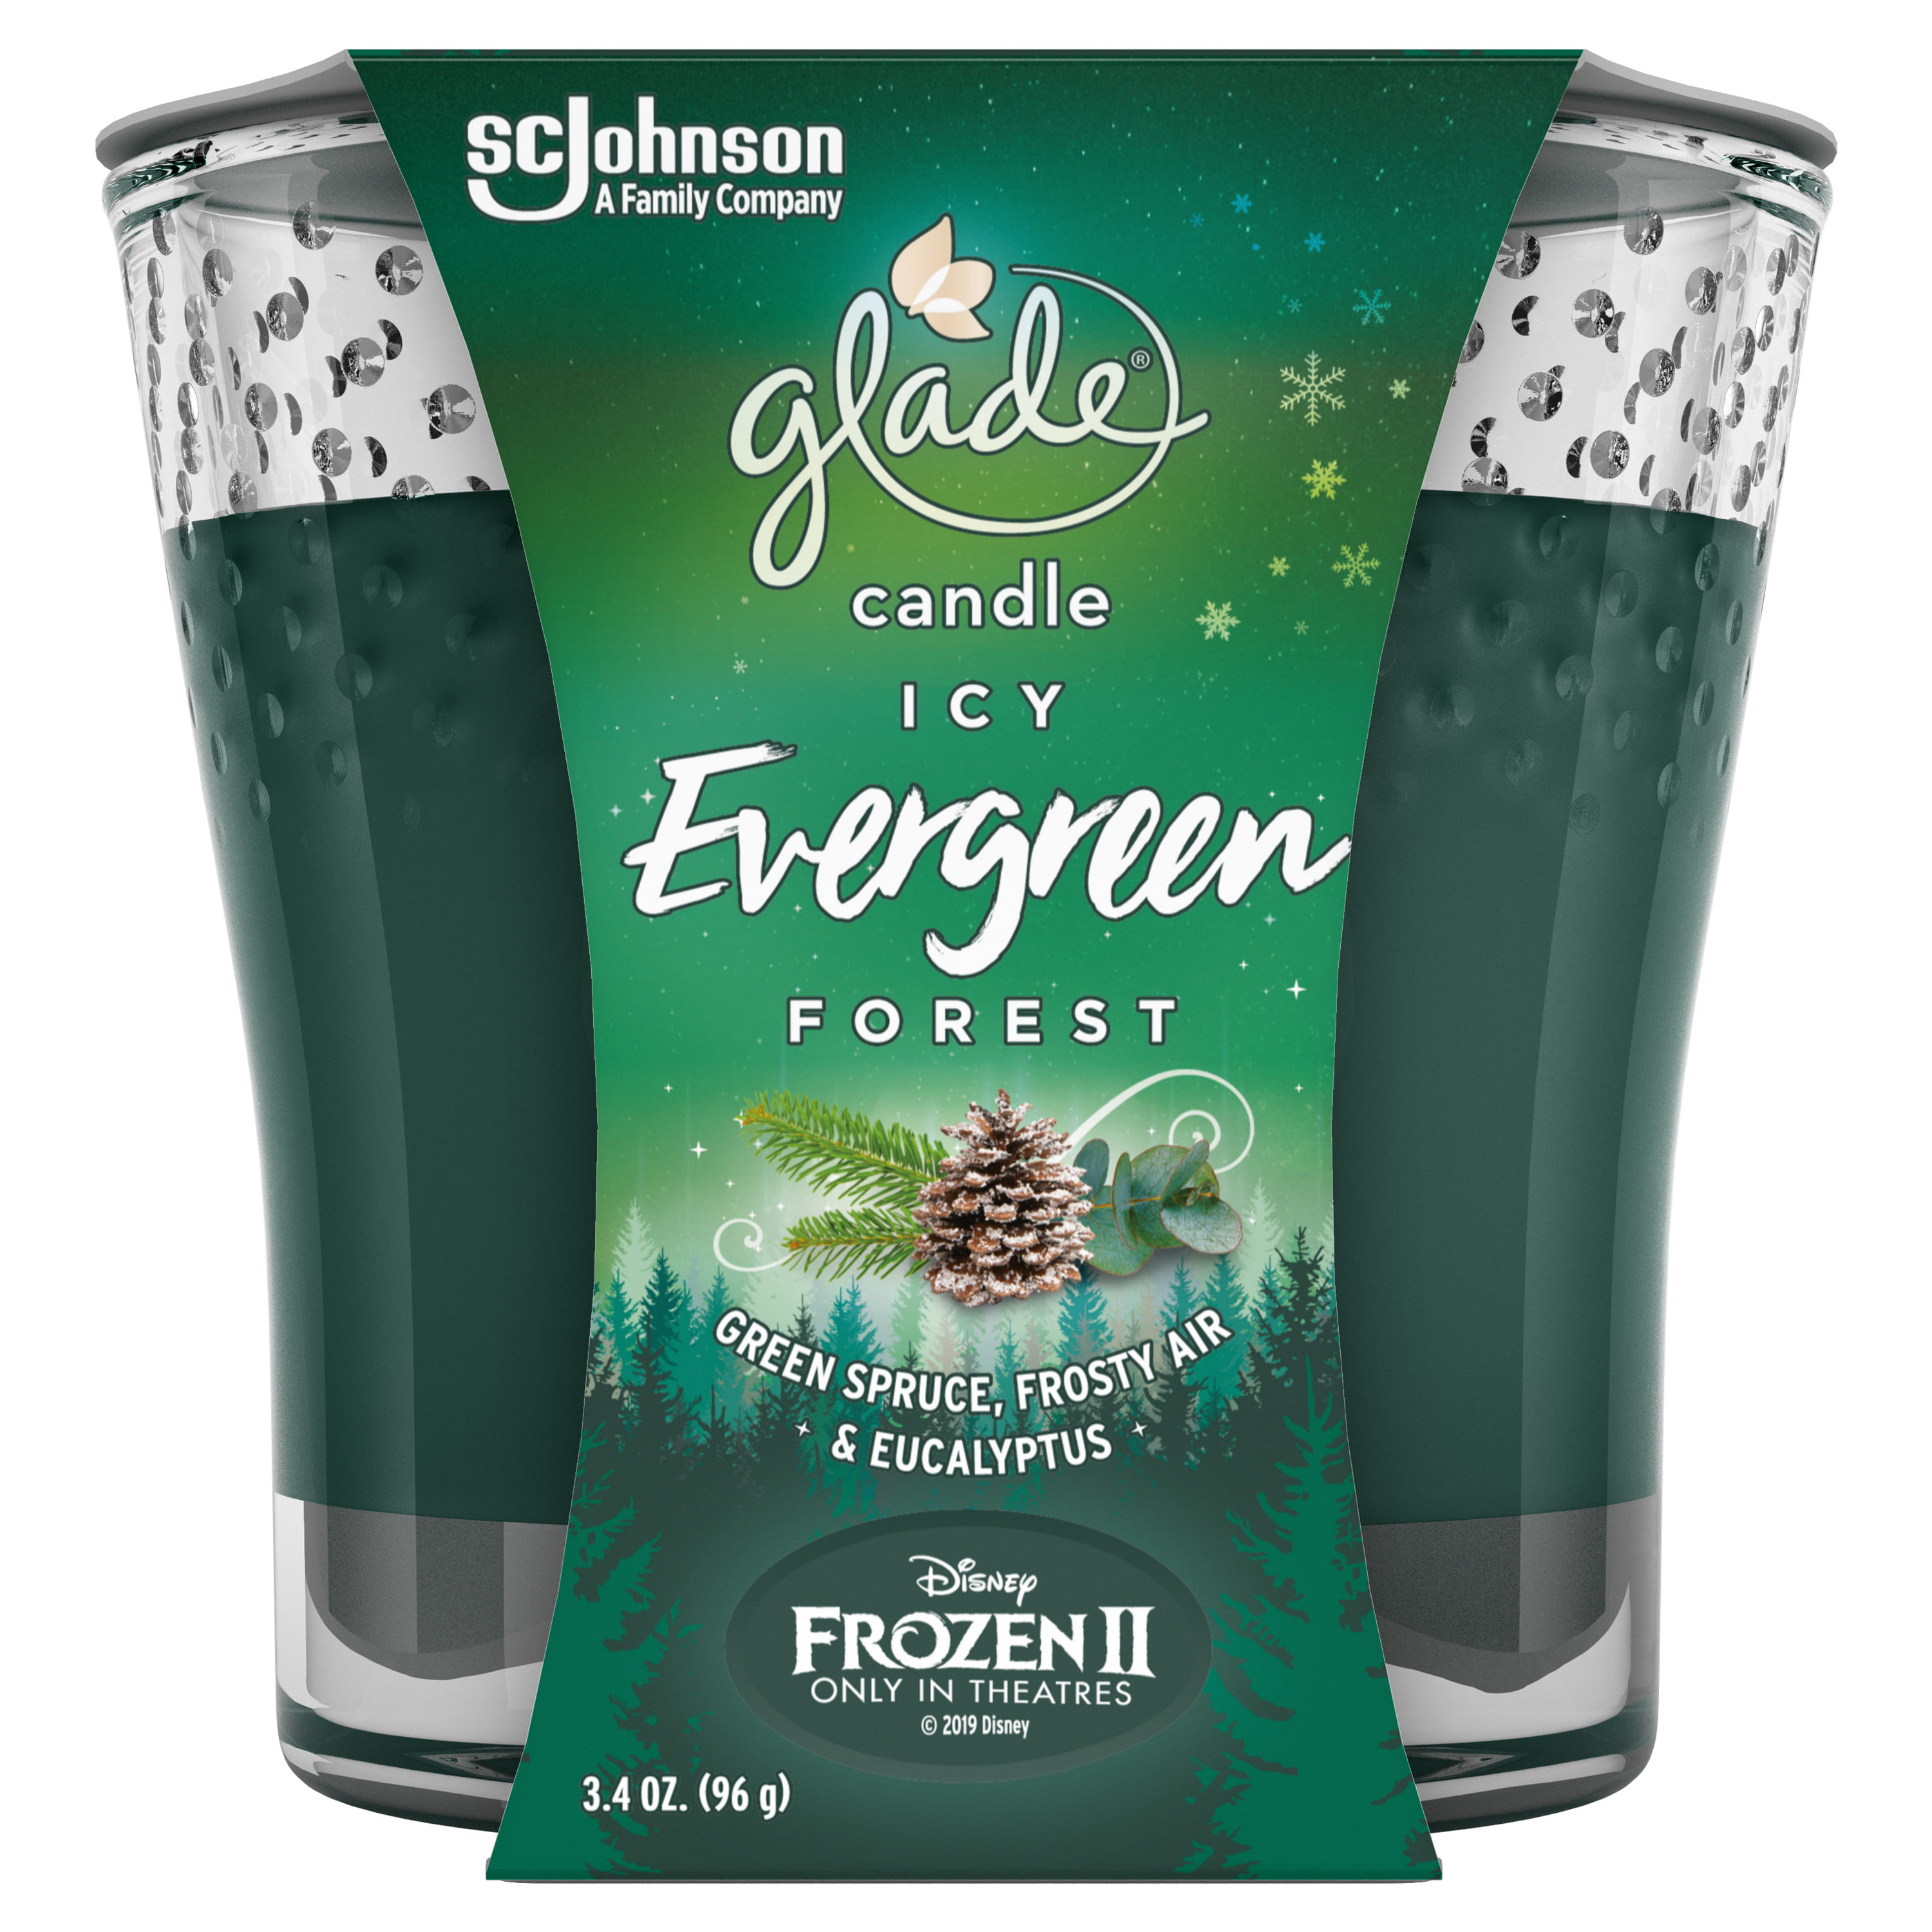 Glade Jar Candle Air Freshener 1 CT, Icy Evergreen Forest ...